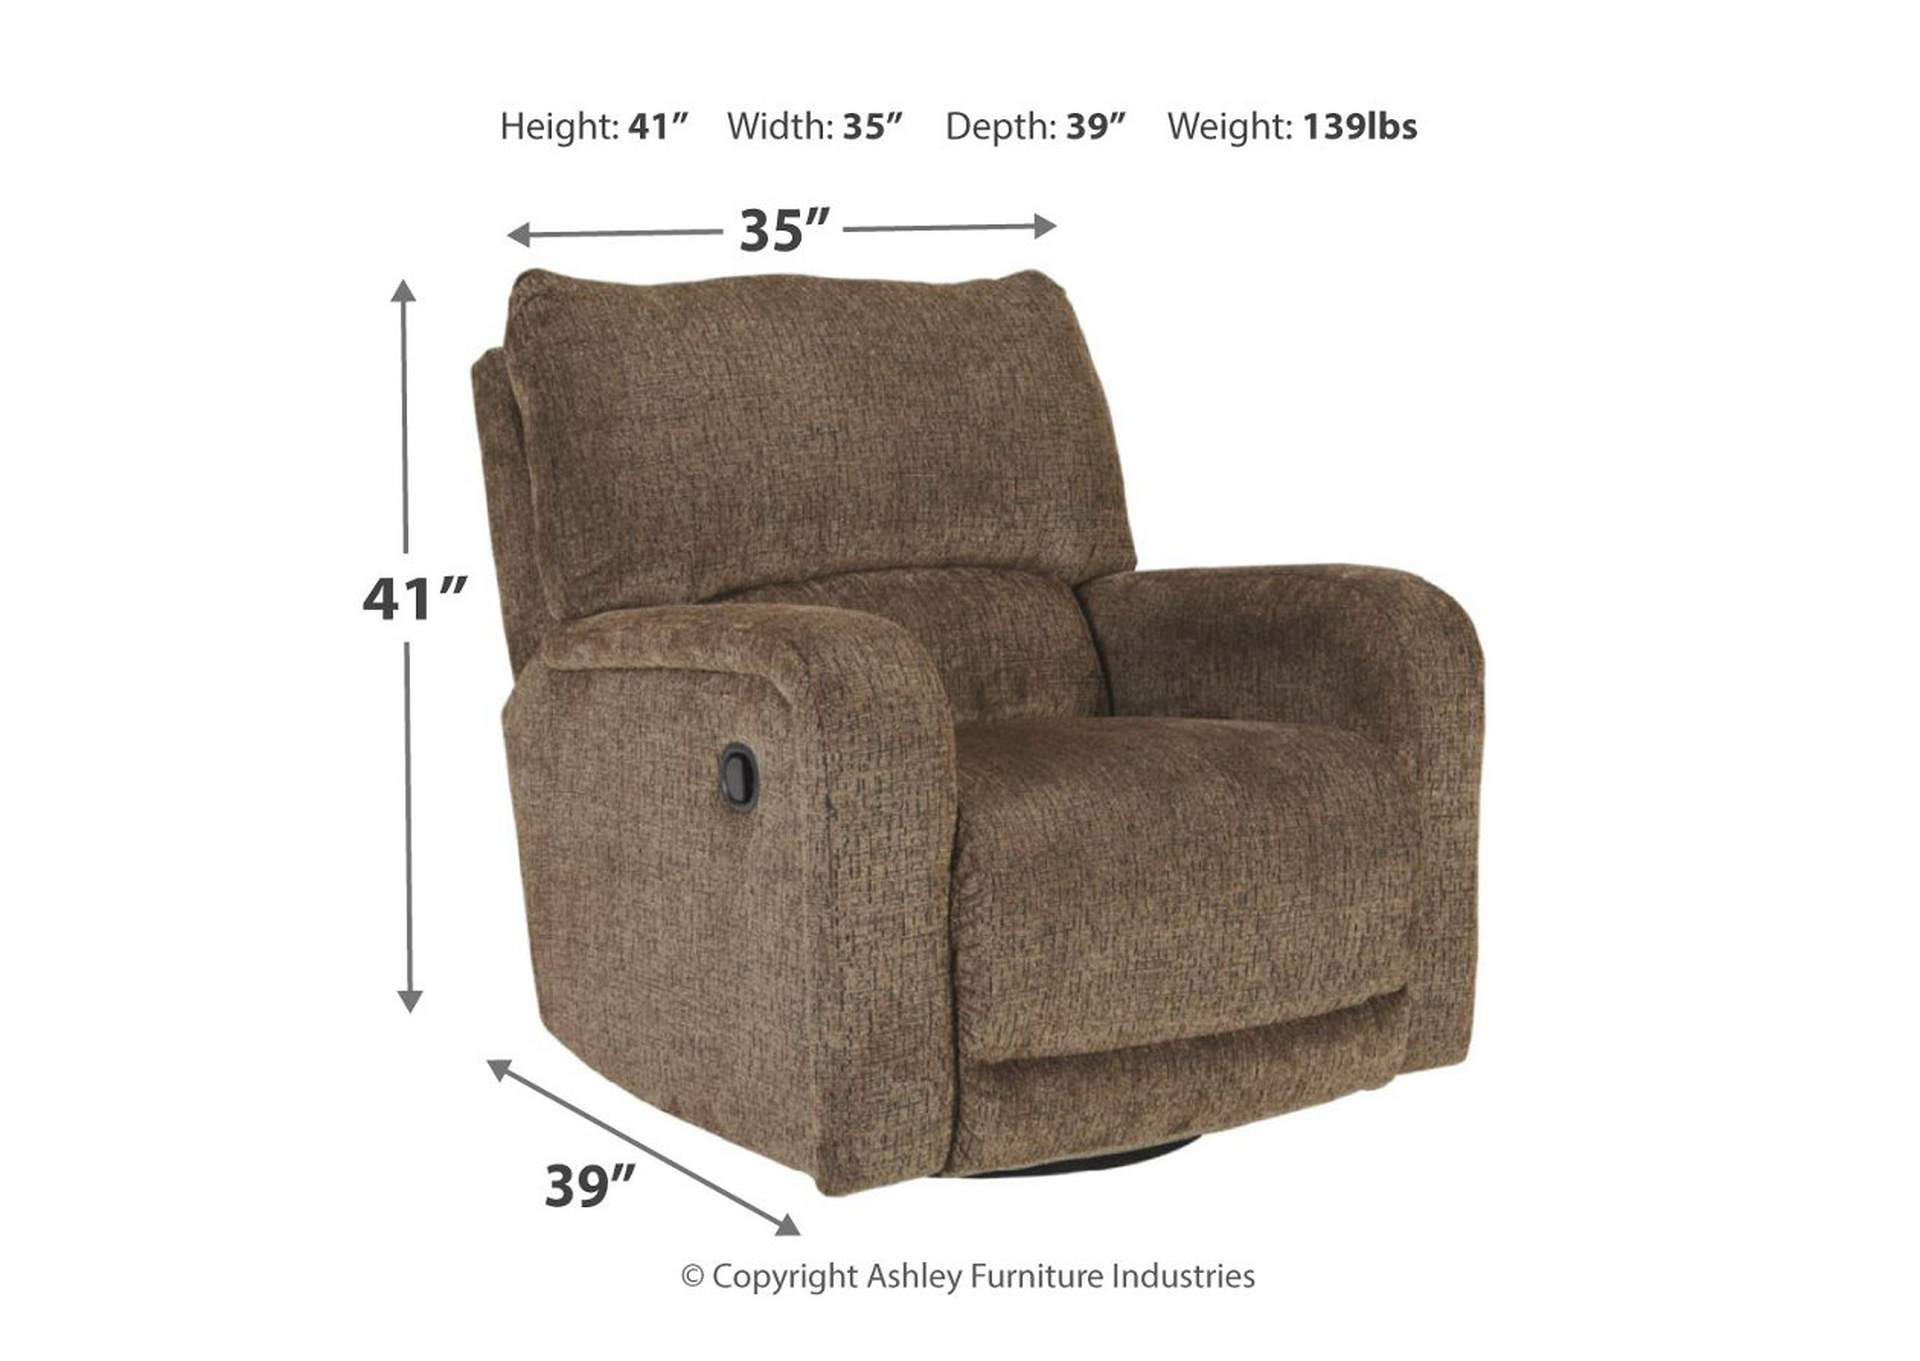 Wittlich Umber Swivel Glider Recliner,Signature Design By Ashley